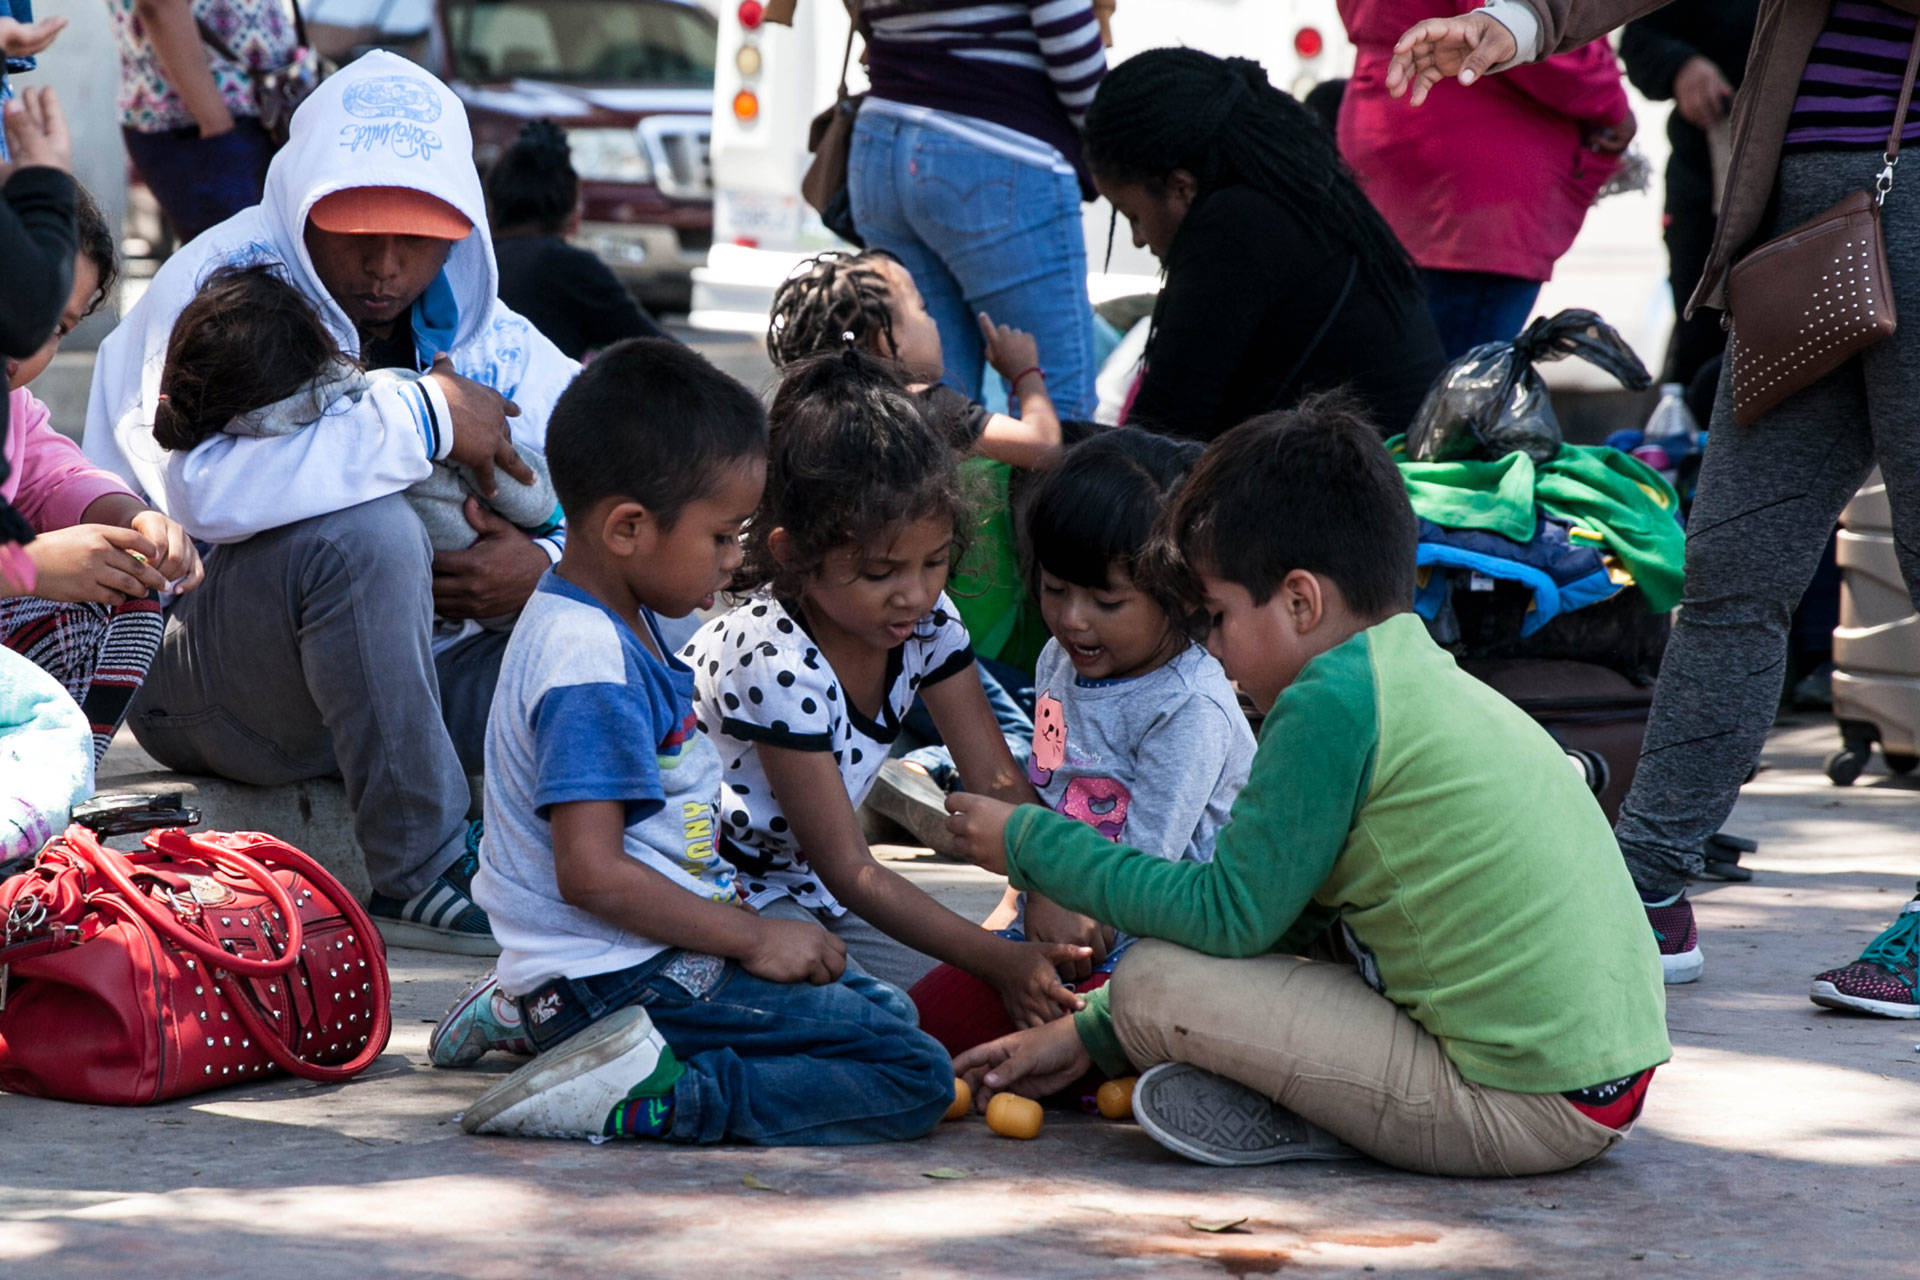 Children play as their parents wait on the Mexican side of the border, in the hopes of entering the U.S. legally by applying for asylum. The families waiting underwent arduous journeys from multiple continents, many spending their life savings to get here. Ariana Dreshler/KQED